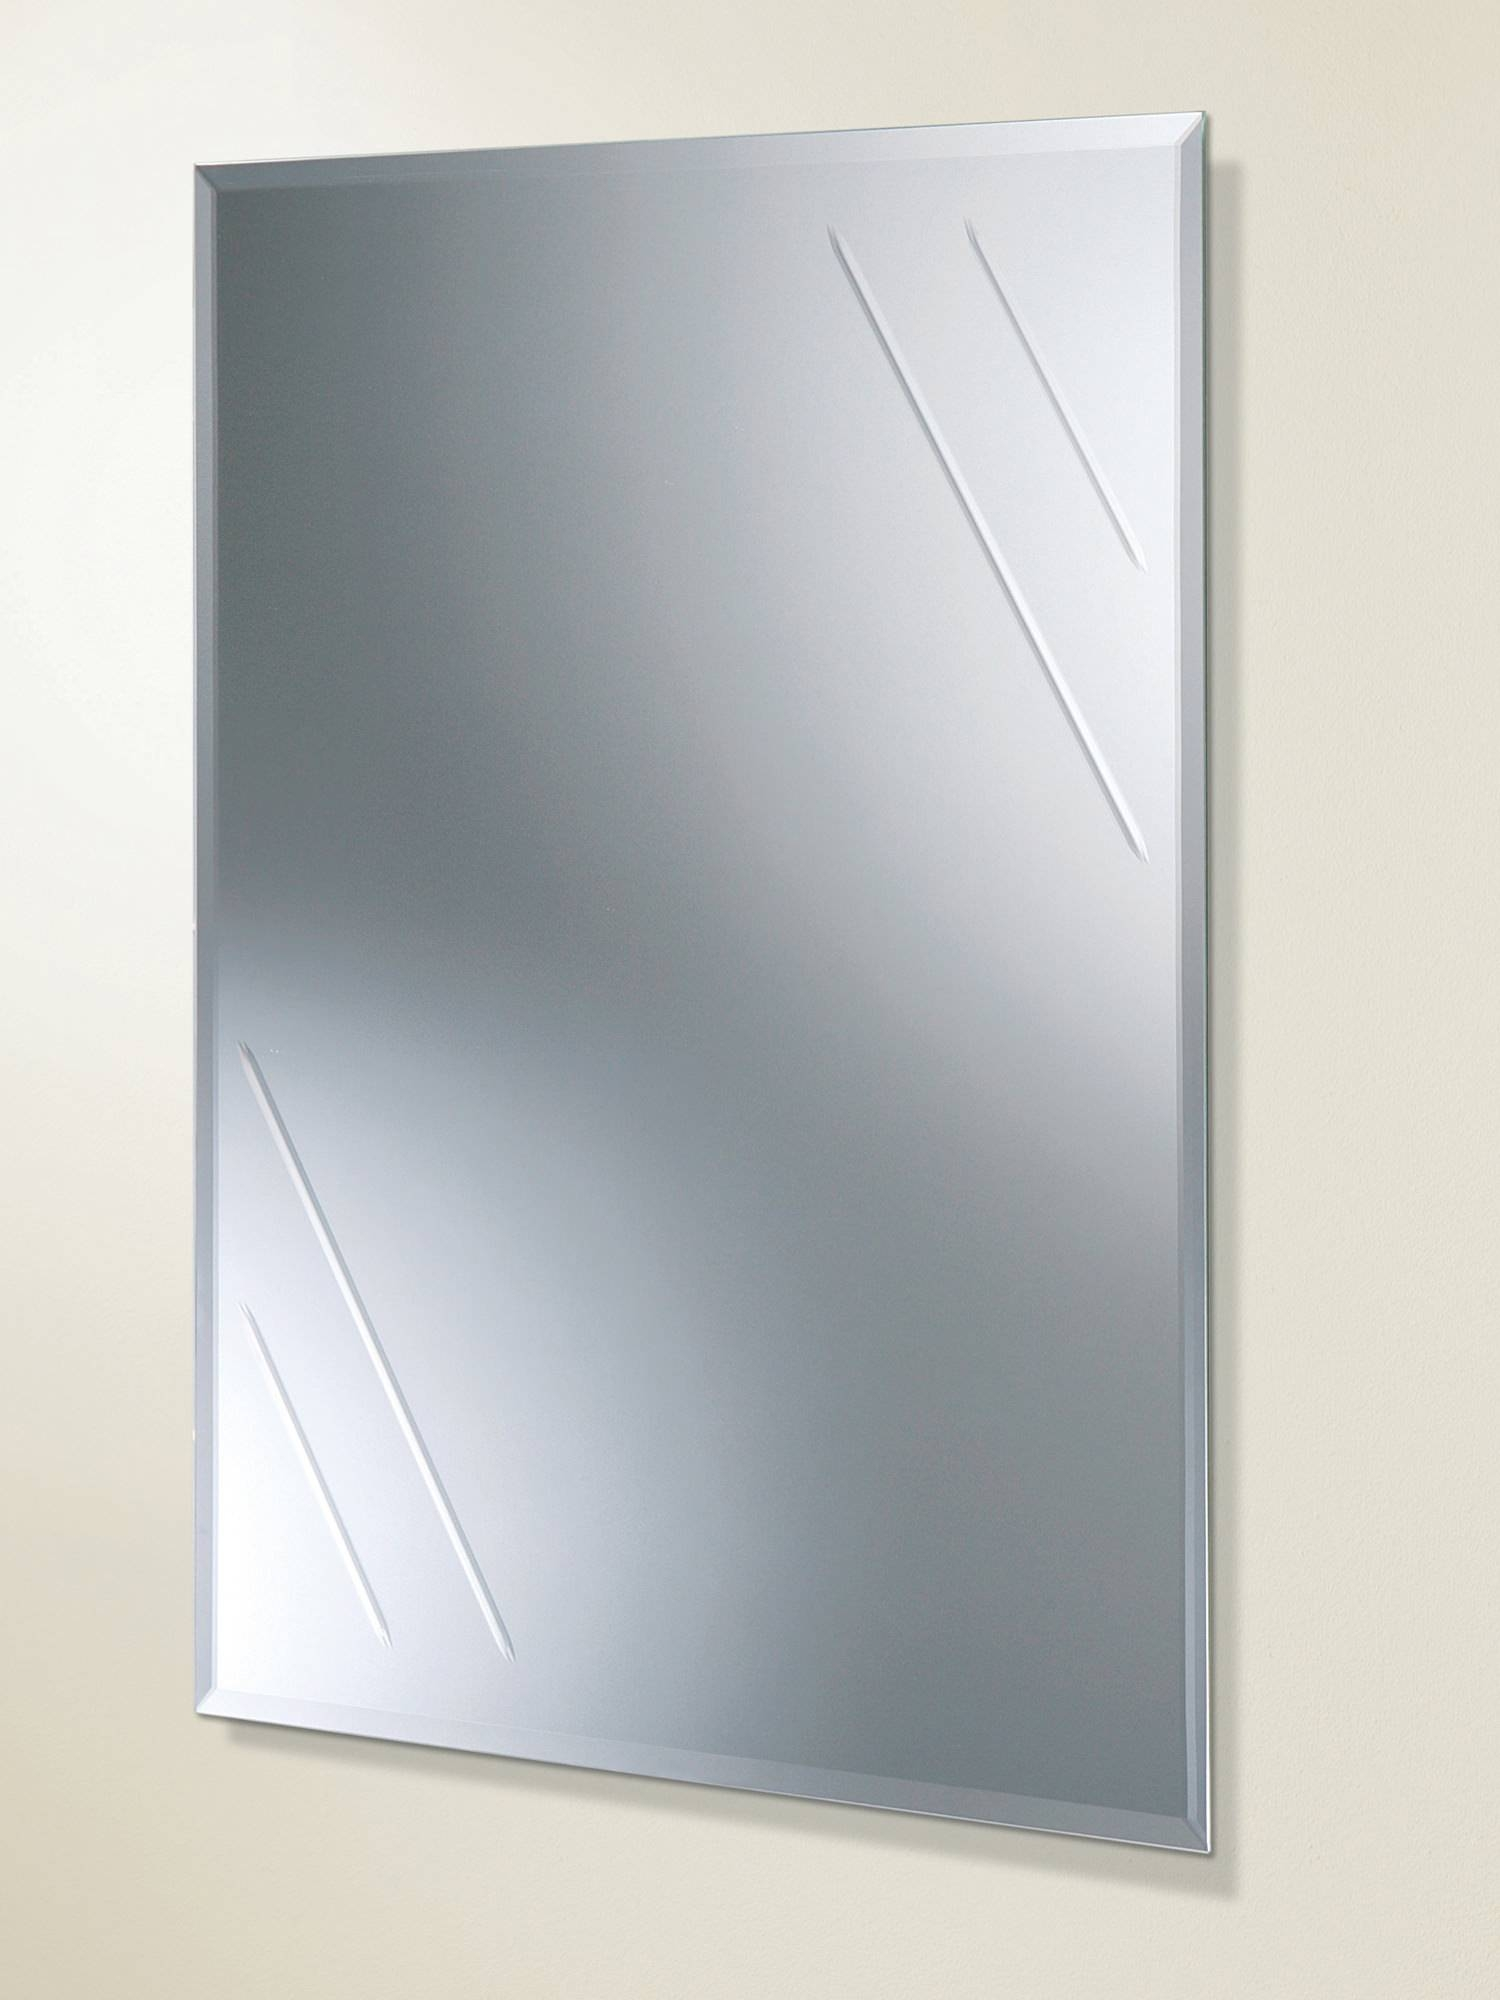 Contemporary Standard Mirrors For Bathrooms - Qs Supplies regarding Bevel Edged Mirrors (Image 5 of 15)